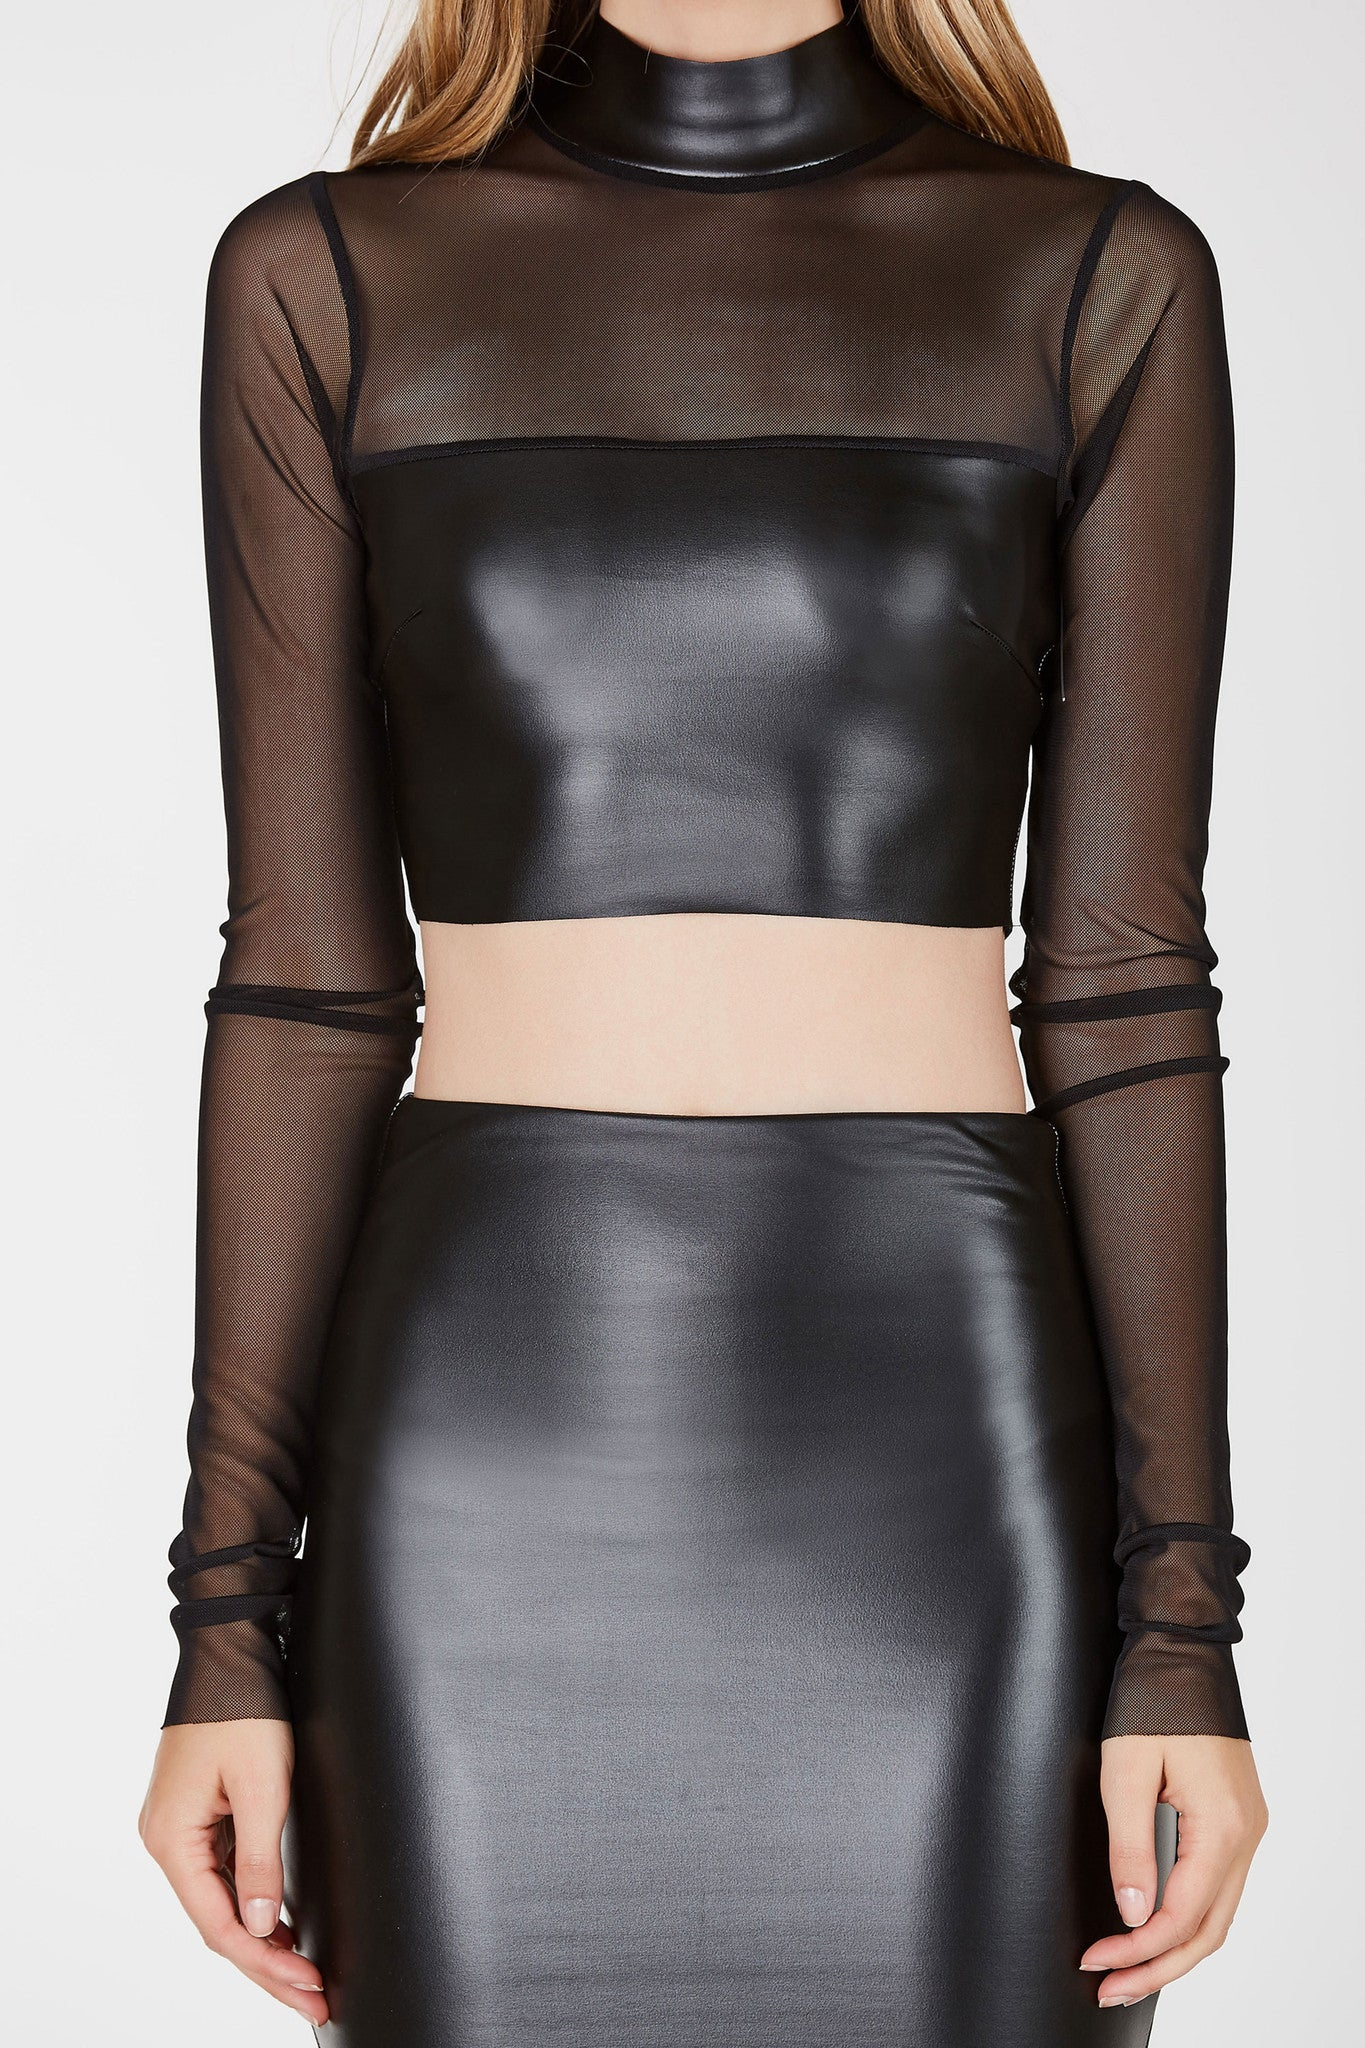 Mock neck long sleeve crop top with contrast faux leather panels. Comes in a set with matching skirt sold separately.